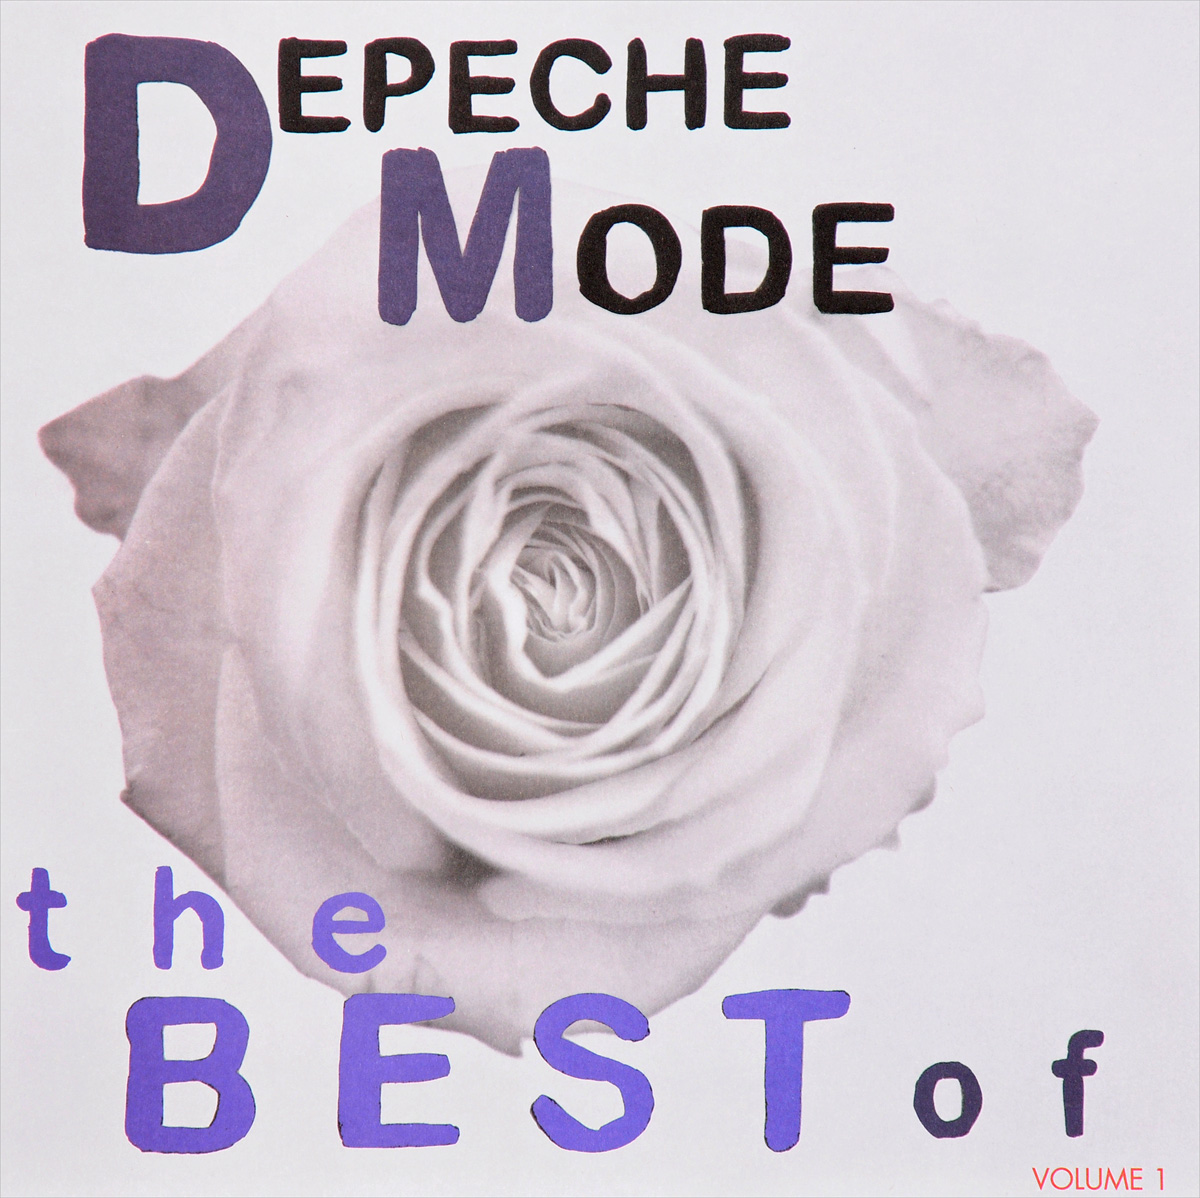 Depeche Mode Depeche Mode. The Best Of Depeche Mode Volume 1 (3 LP) depeche mode depeche mode the best of depeche mode volume 1 3 lp